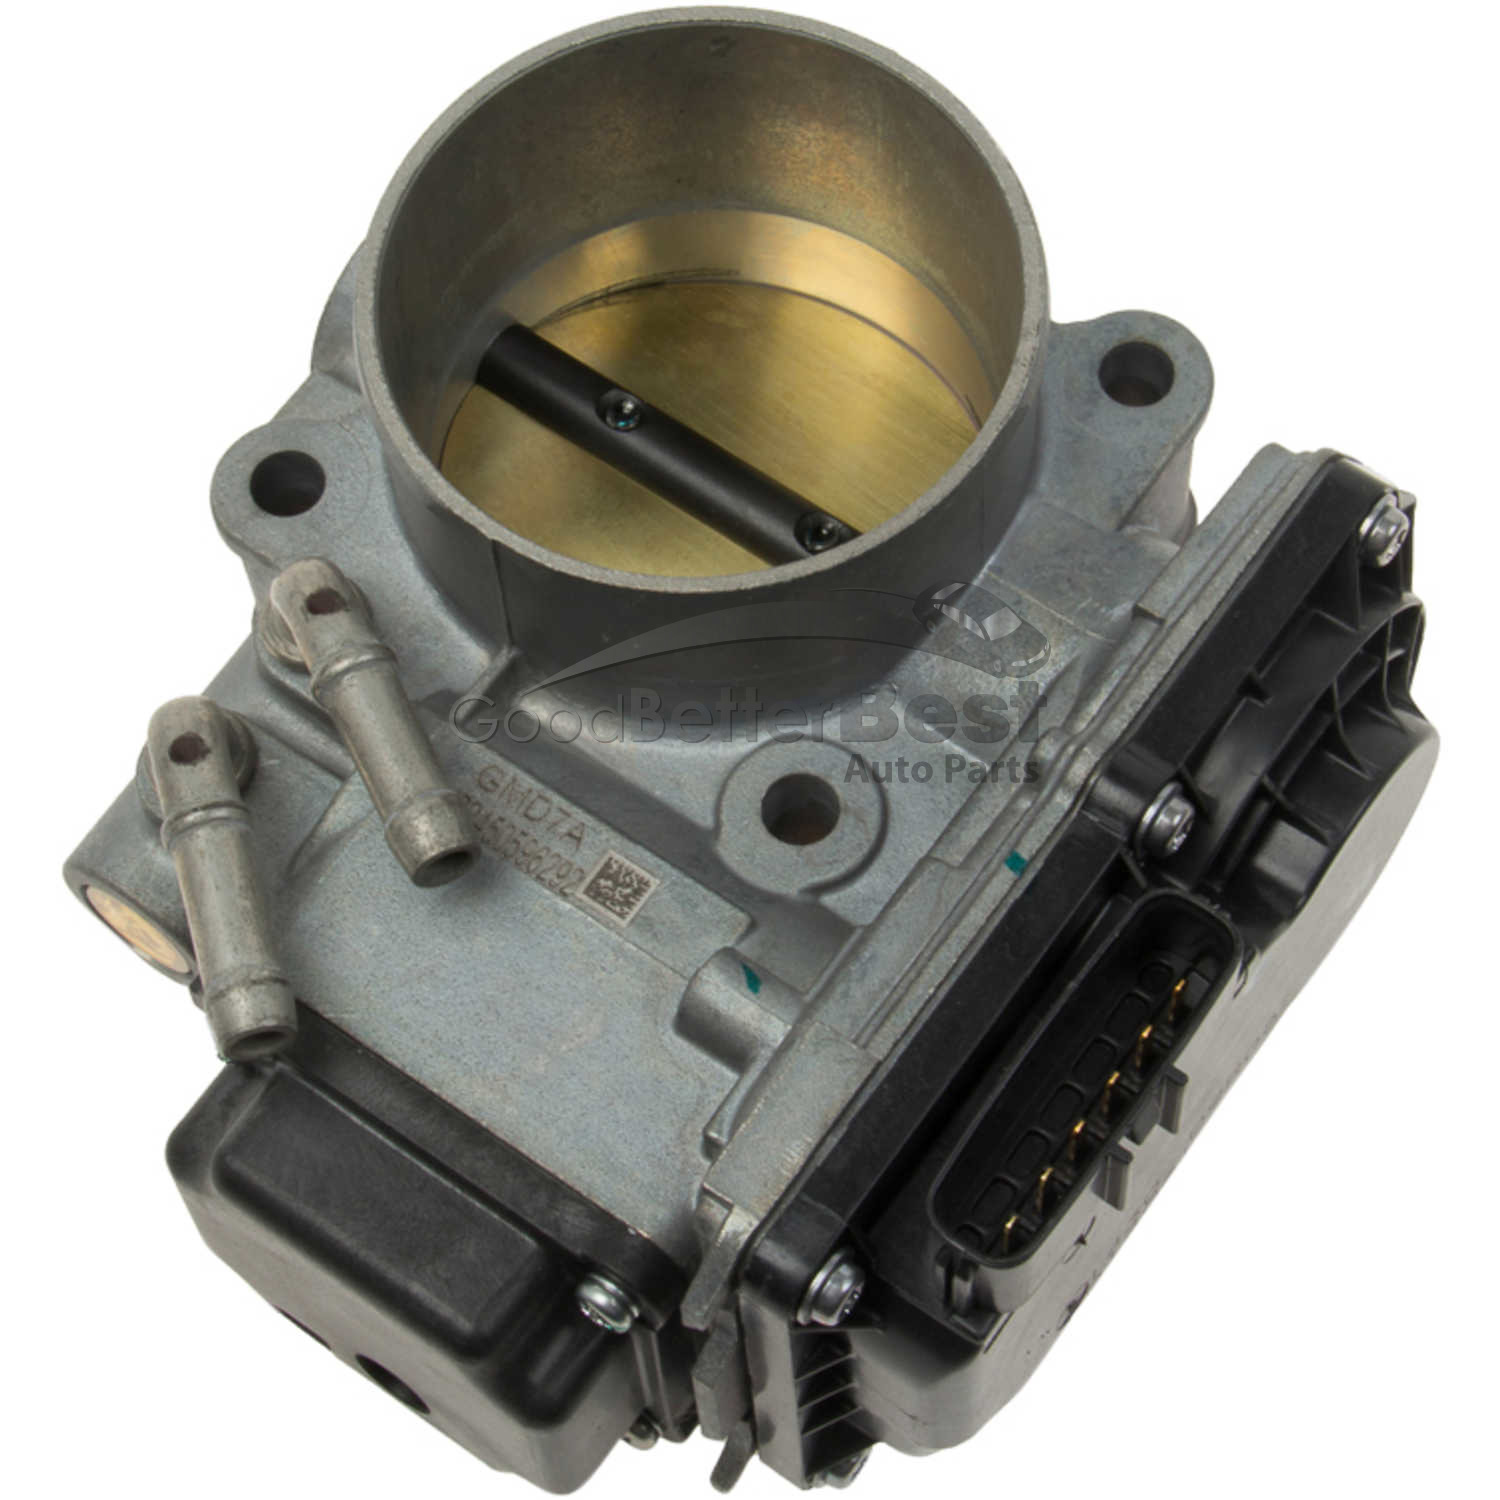 16400-R44-A02 Throttle Body Assembly 16400-R48-H01 Compatible with Honda Accord 2.4L 2008-2012